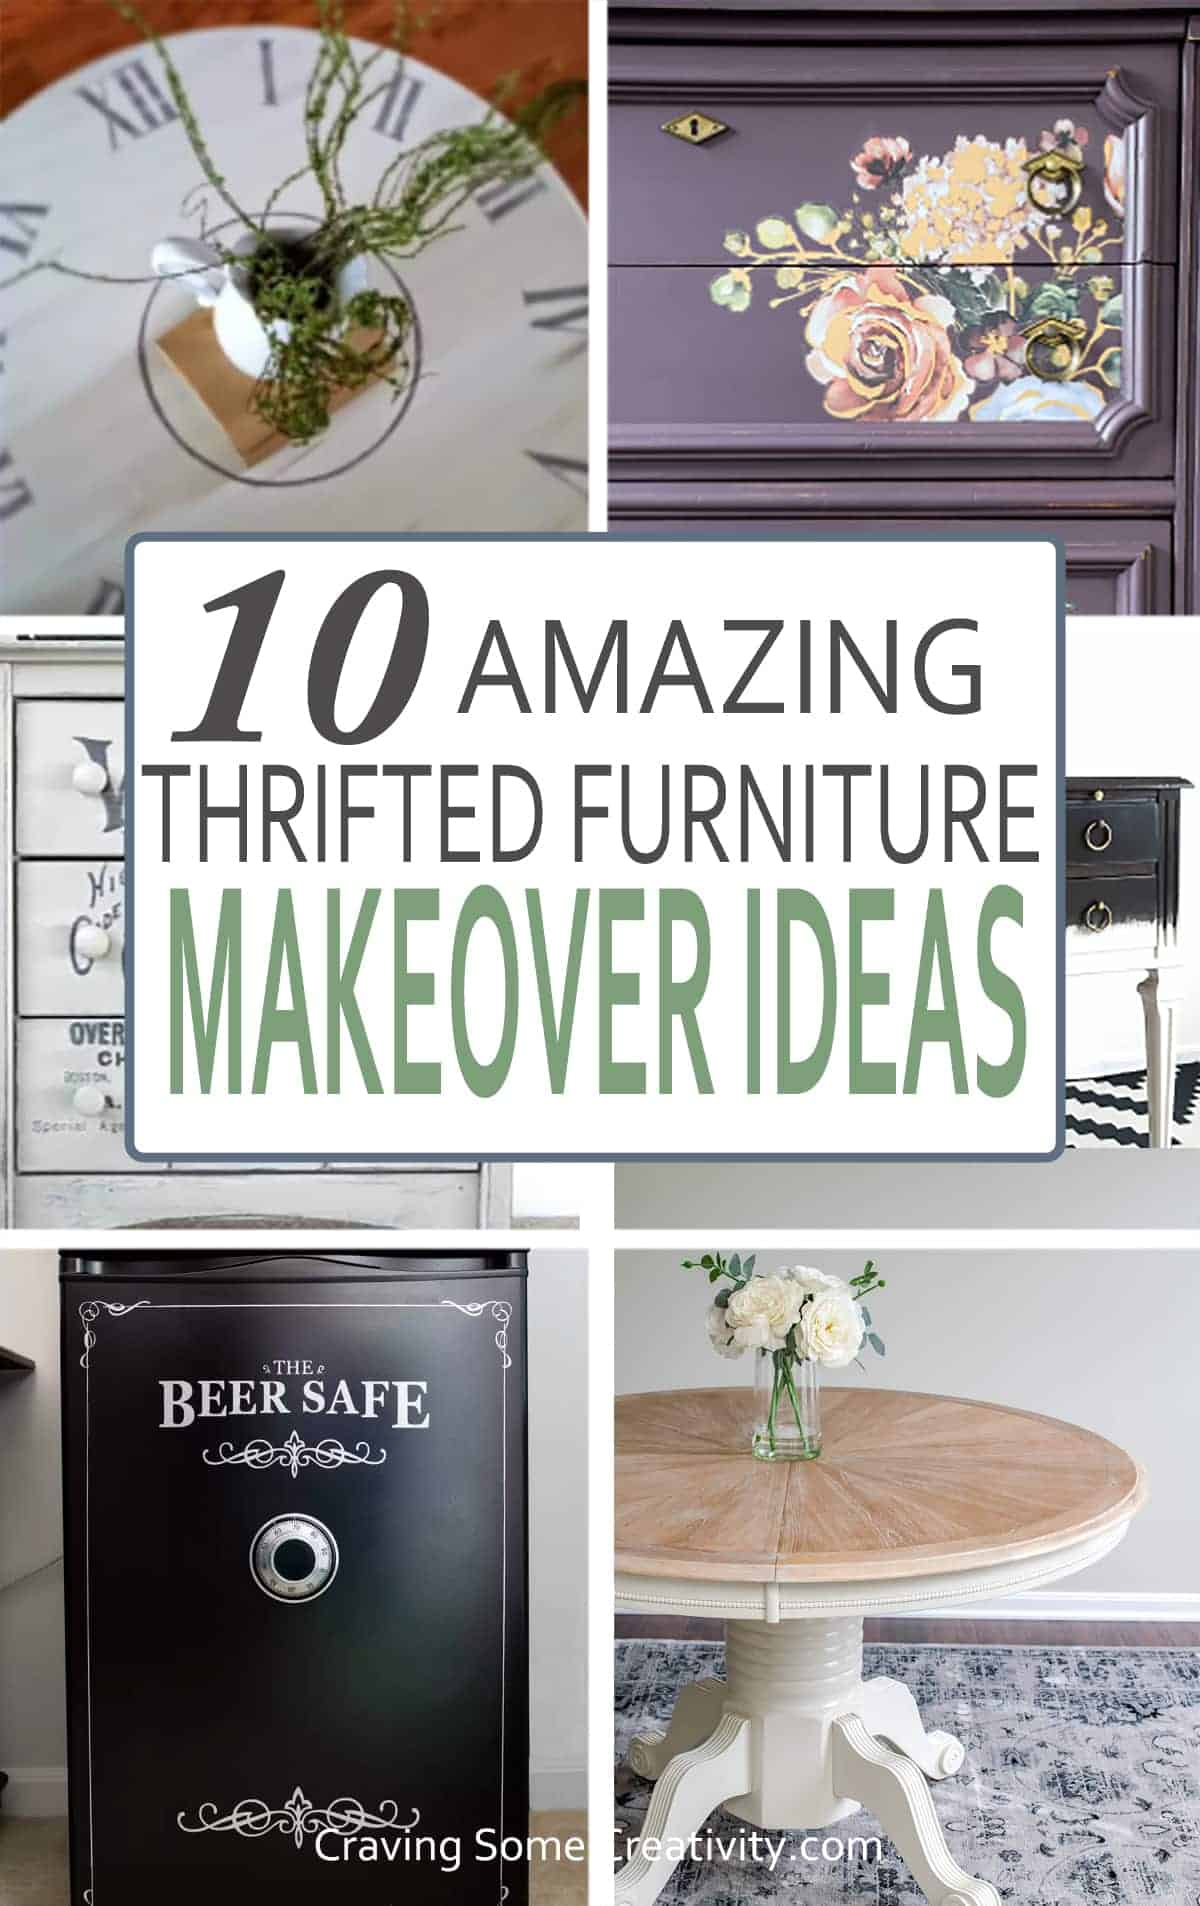 Collage of thrifted furniture makeovers including a painted refridgerator, a purple dresser and painted tables with post title.